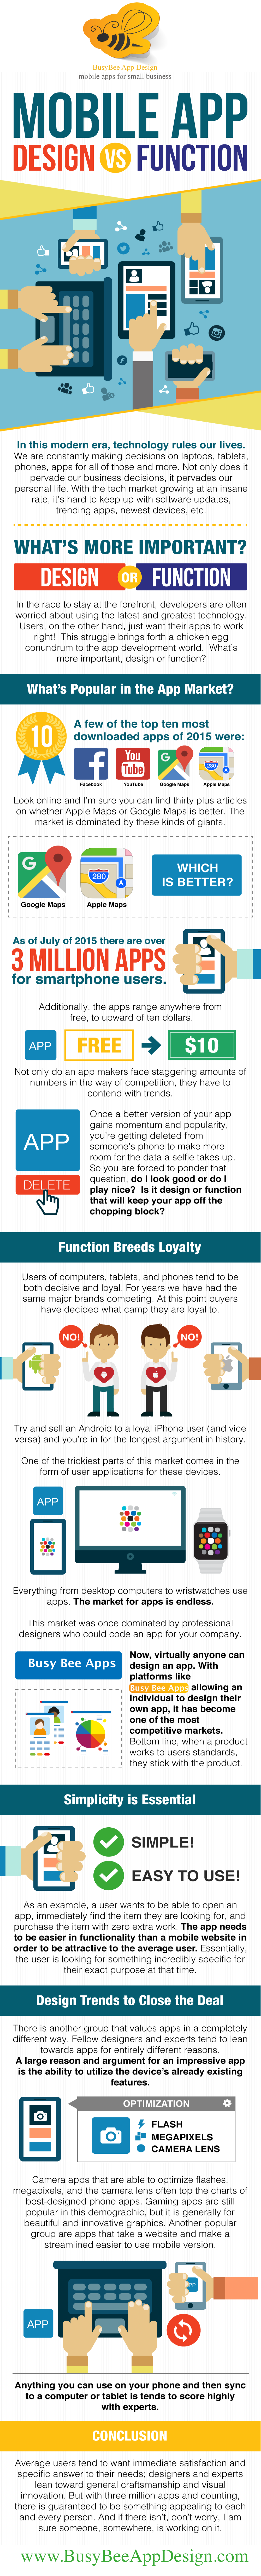 App Design Vs Function: Where To Invest More [Infographic]